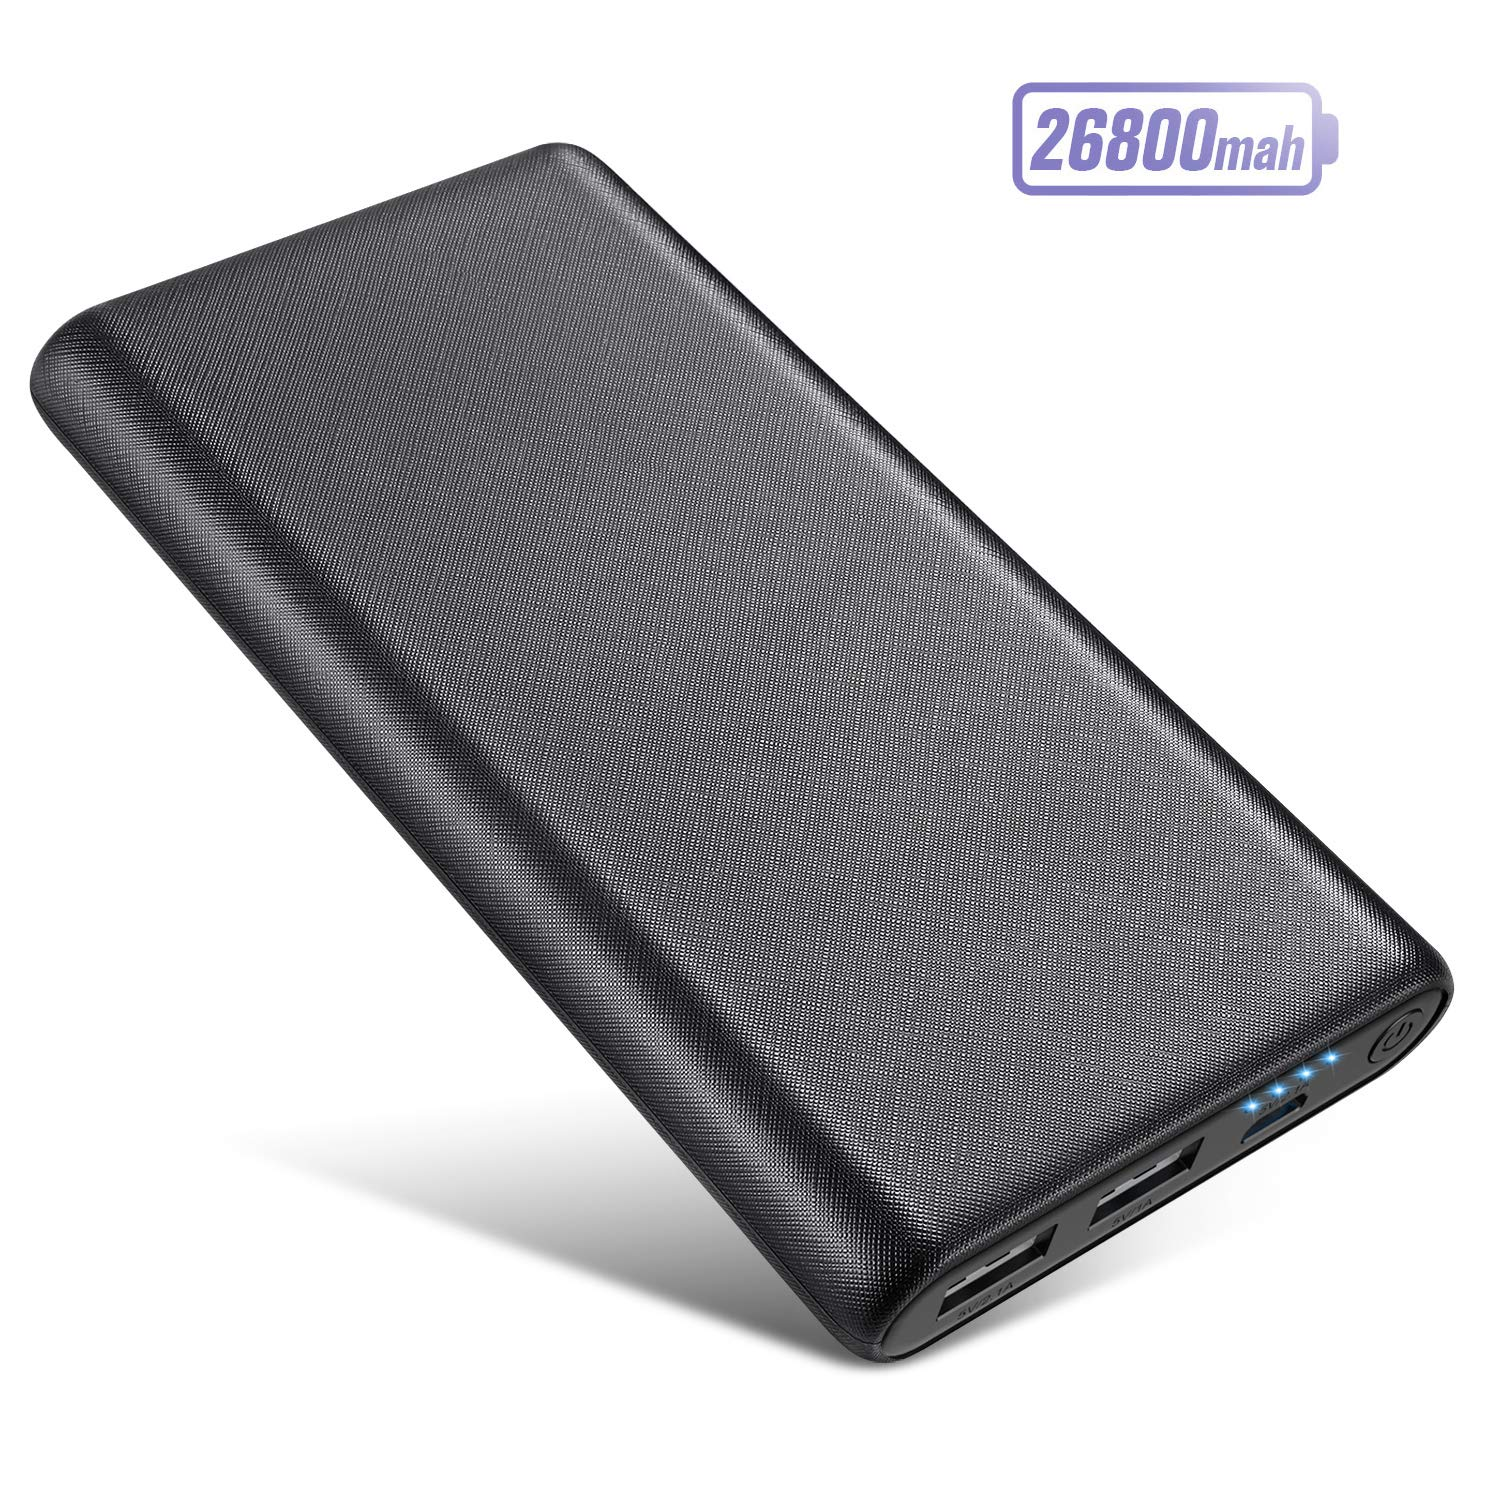 Portable Charger 26800mAh Power Bank, Ultra-High Capacity Universal External Battery Pack with 4 LEDIndicator DualUSB Ports Battery Backup for Smart Phones,Tablet and More-[Black]